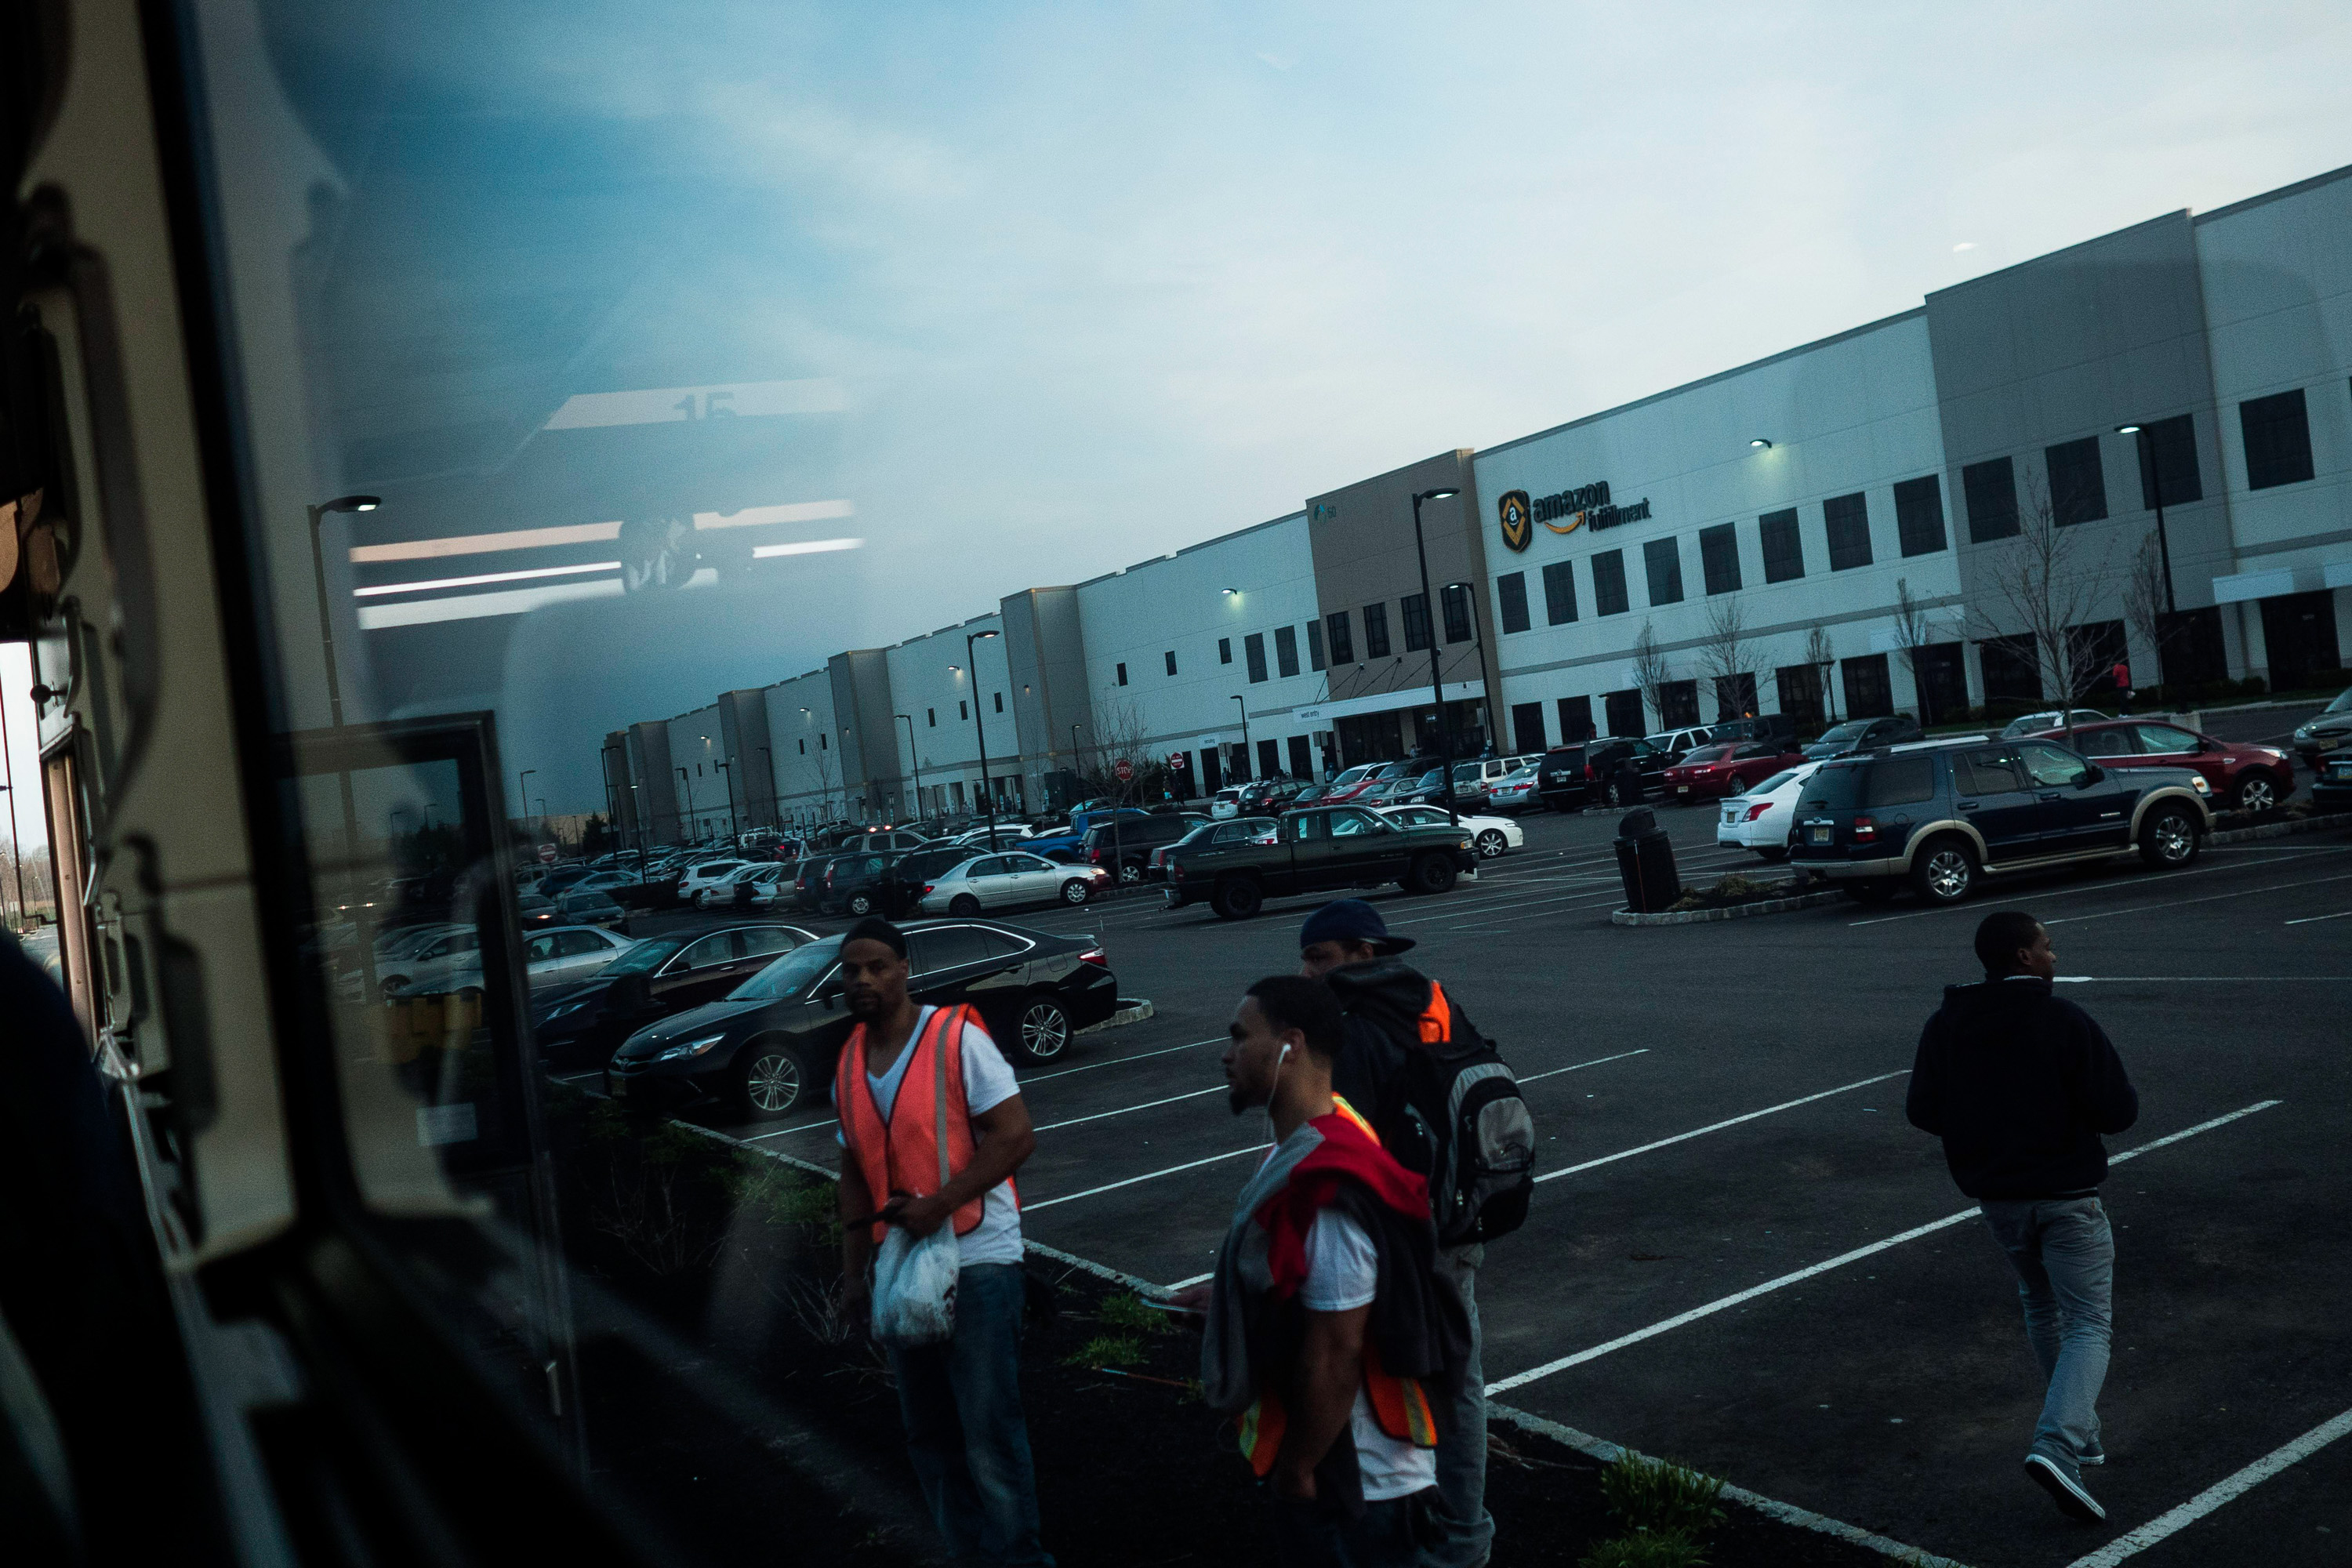 -- PHOTO MOVED IN ADVANCE AND NOT FOR USE - ONLINE OR IN PRINT - BEFORE APRIL 16, 2017. -- Commuters use a shuttle bus at the Amazon Center in Robbinsville, N.J., April 12, 2017. For all the attention and urgency that online shopping attracts, the vast majority of purchases are still made in-person, in places like Kmart, before a checkout counter, purse or wallet in hand. (John Taggart/The New York Times)